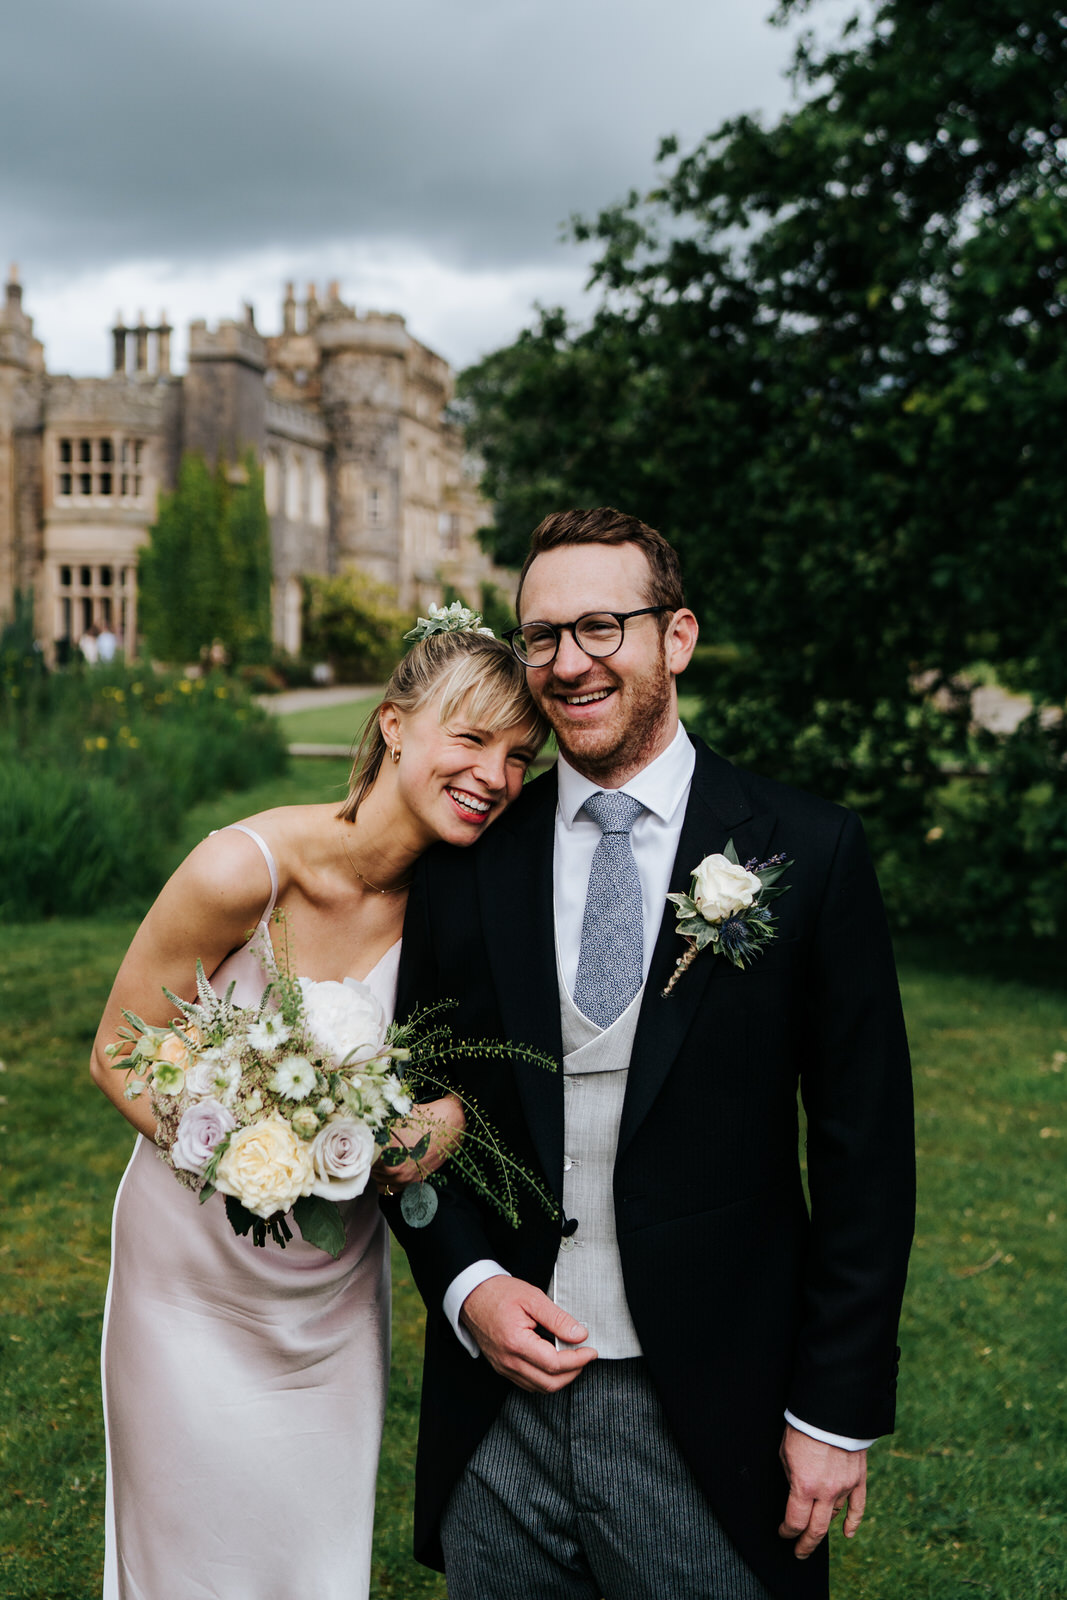 Groom and bride's siter smile during formal photograph with Hawarden Castle in the background